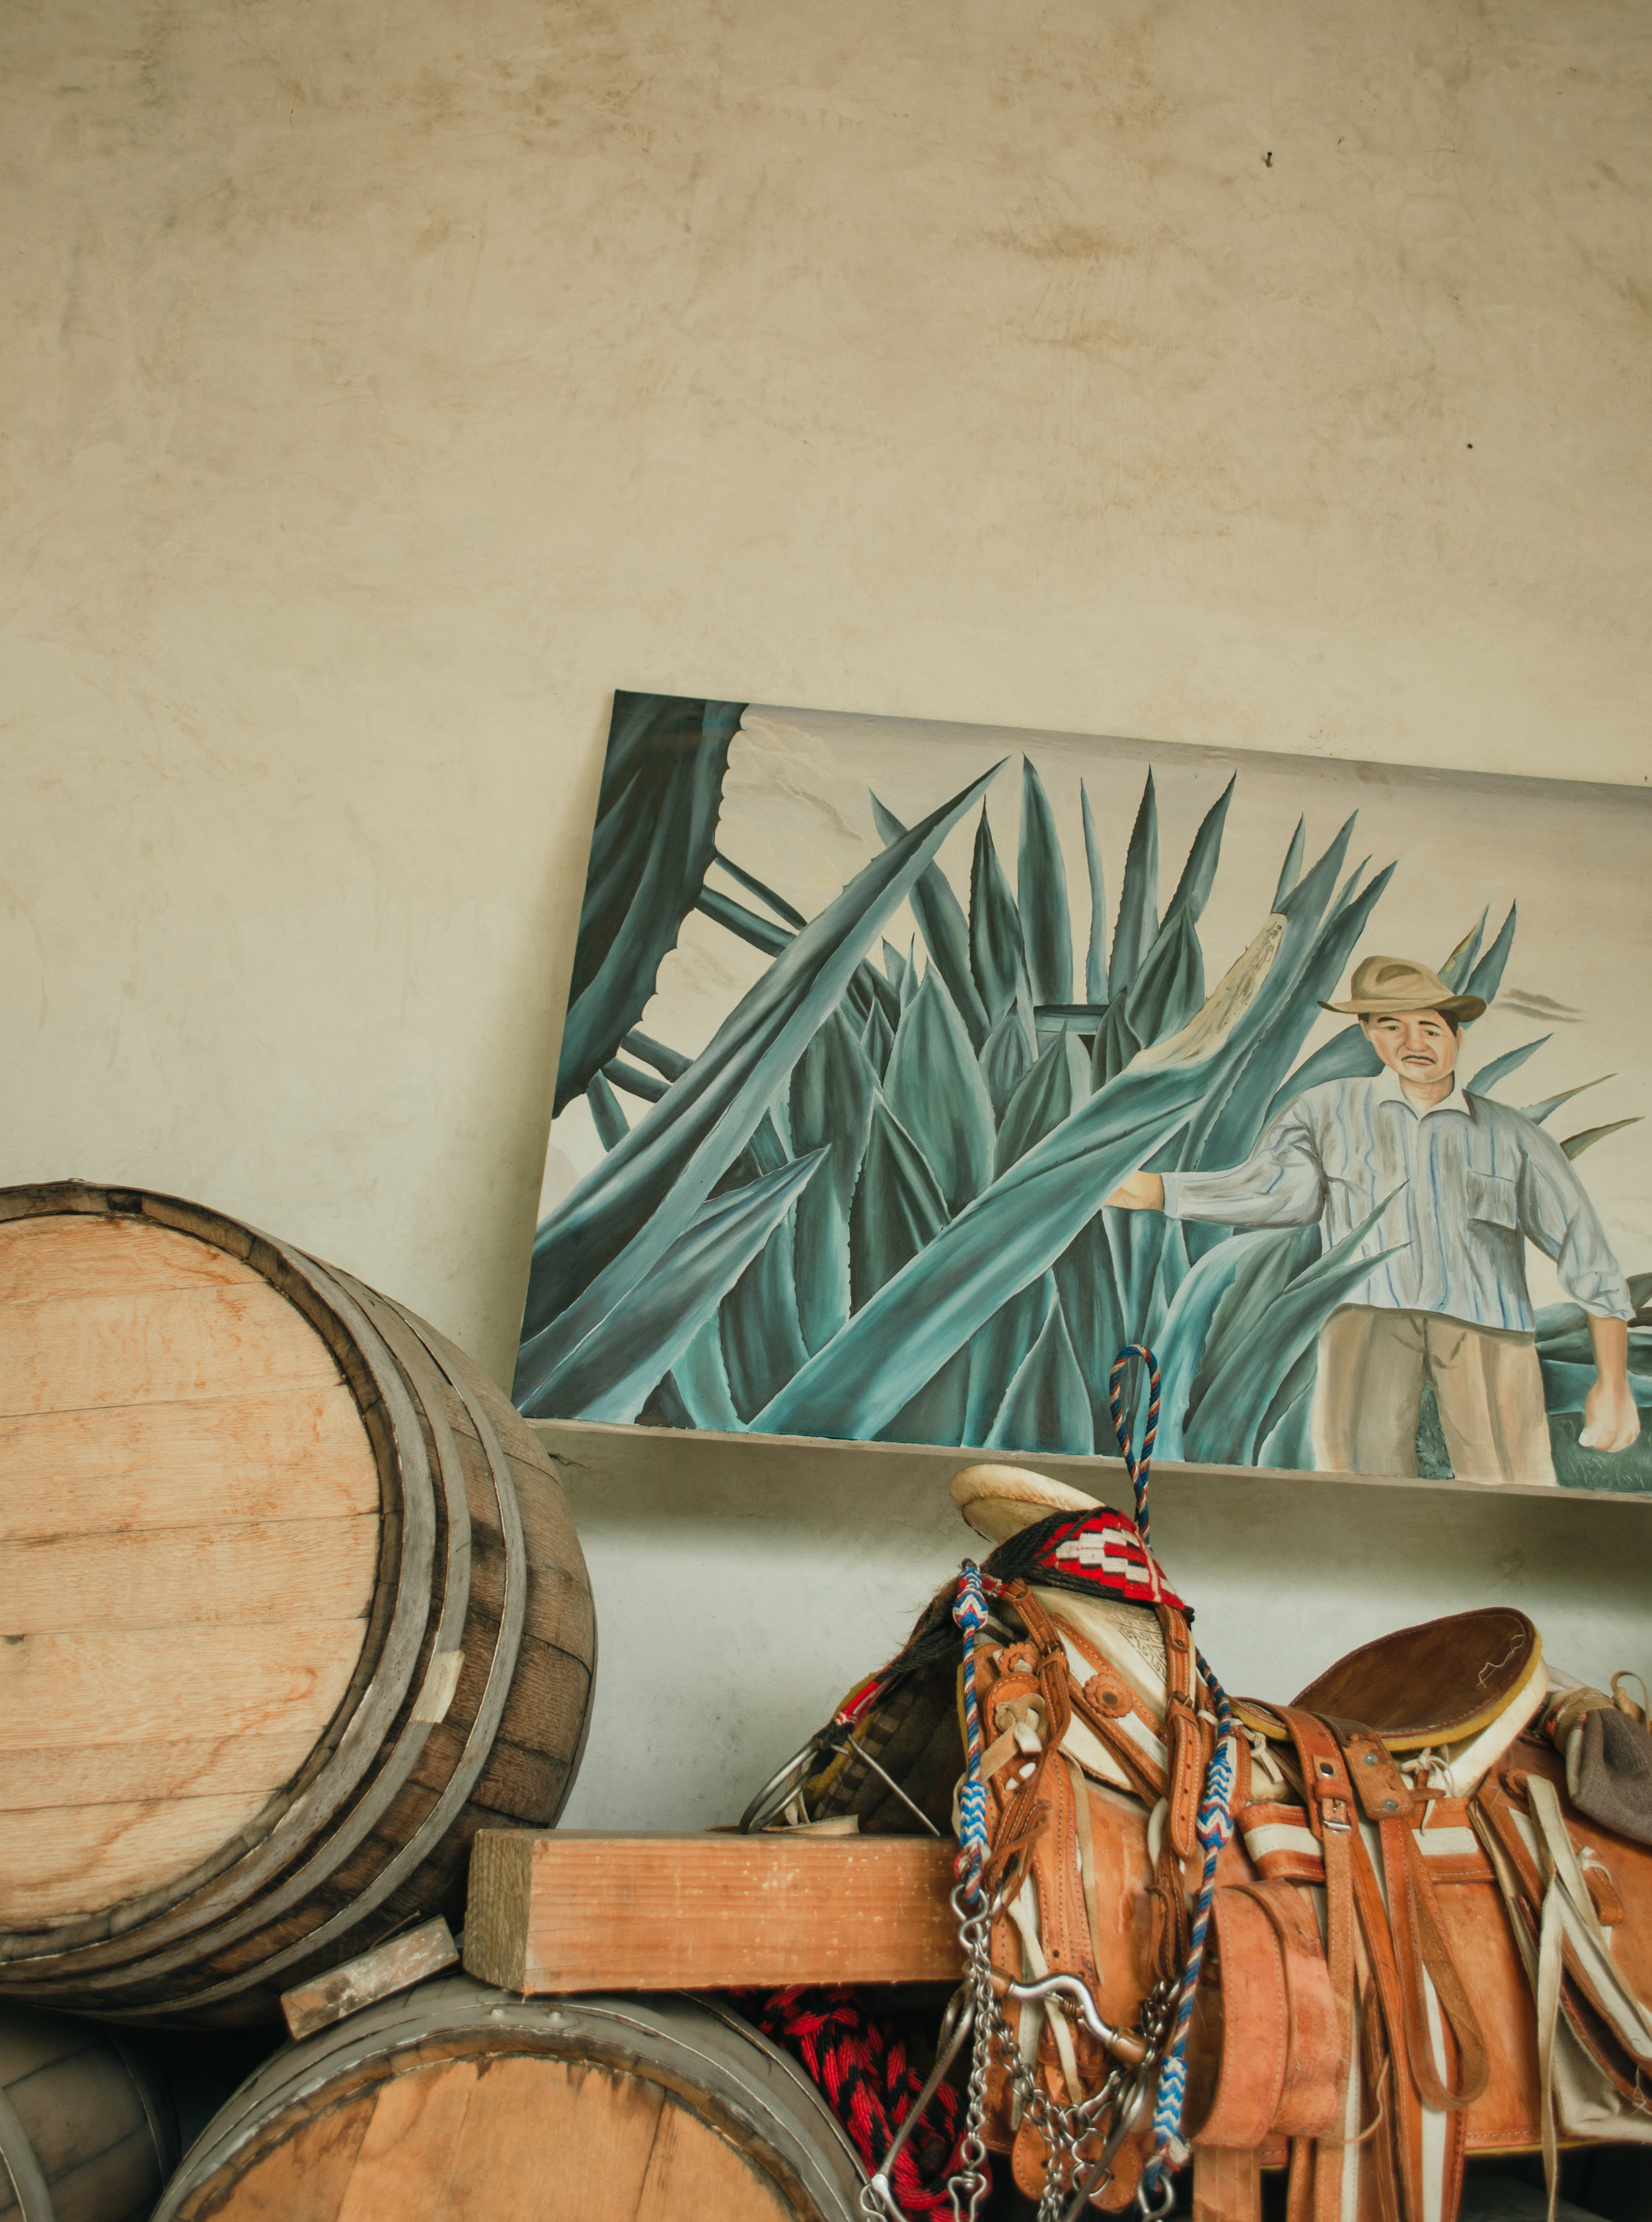 scenes from one of the beautiful mezcal distilleries we visited